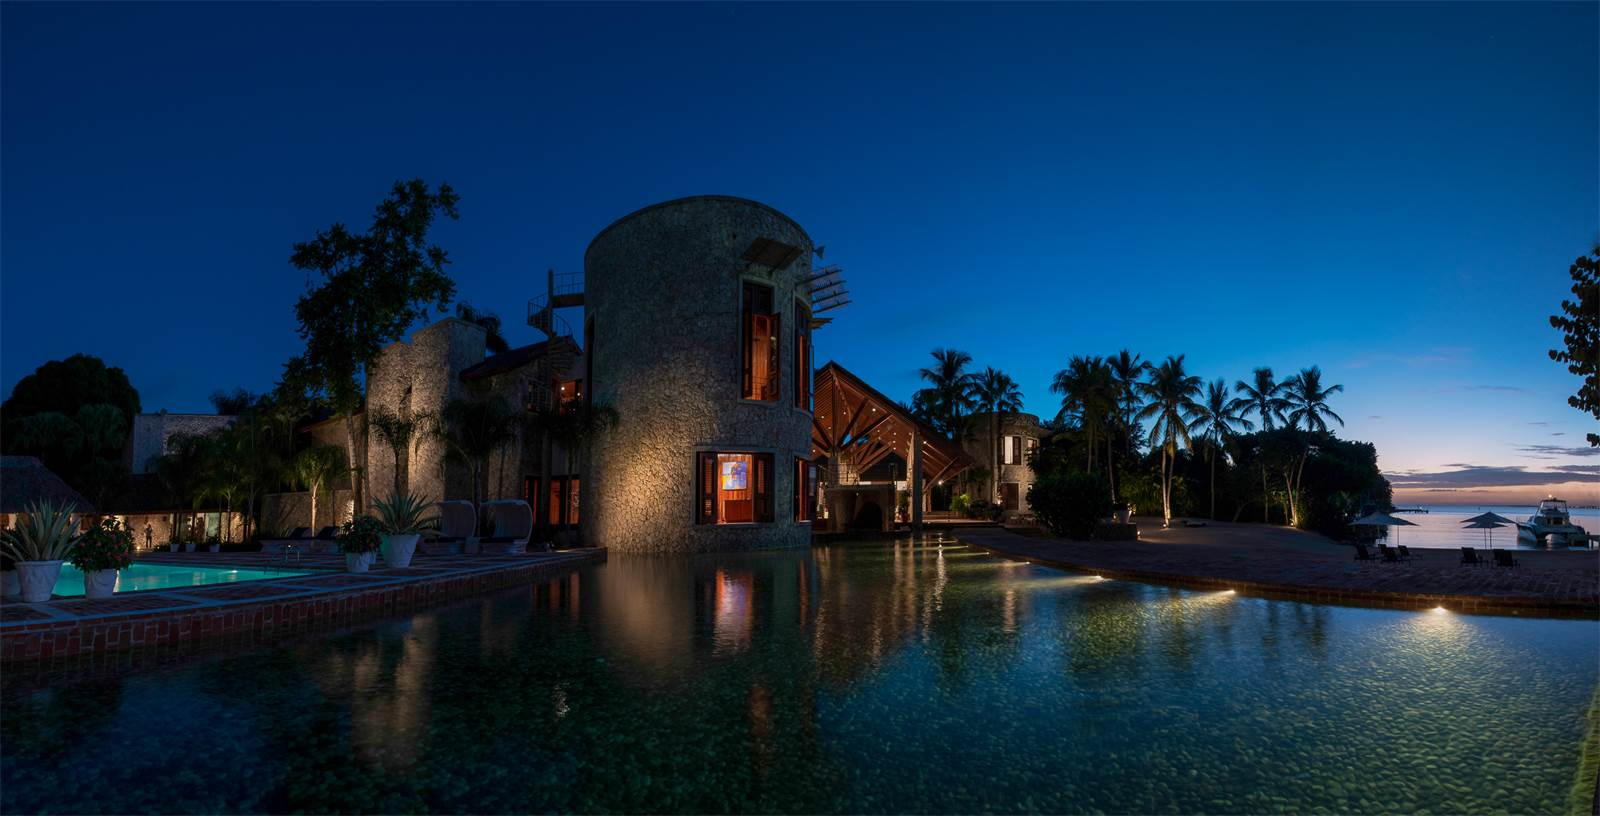 <b>7 Bedrooms, 35,000 sq. ft.</b><br/>Nearly 35,000 square feet, this luxurious architectural masterpiece with private beach offers breathtaking ocean views in a paradise setting. The palatial estate is supremely situated in the exclusive Punta Minitas oceanfront section of the five-star Casa de Campo resort, Dominican Republic.